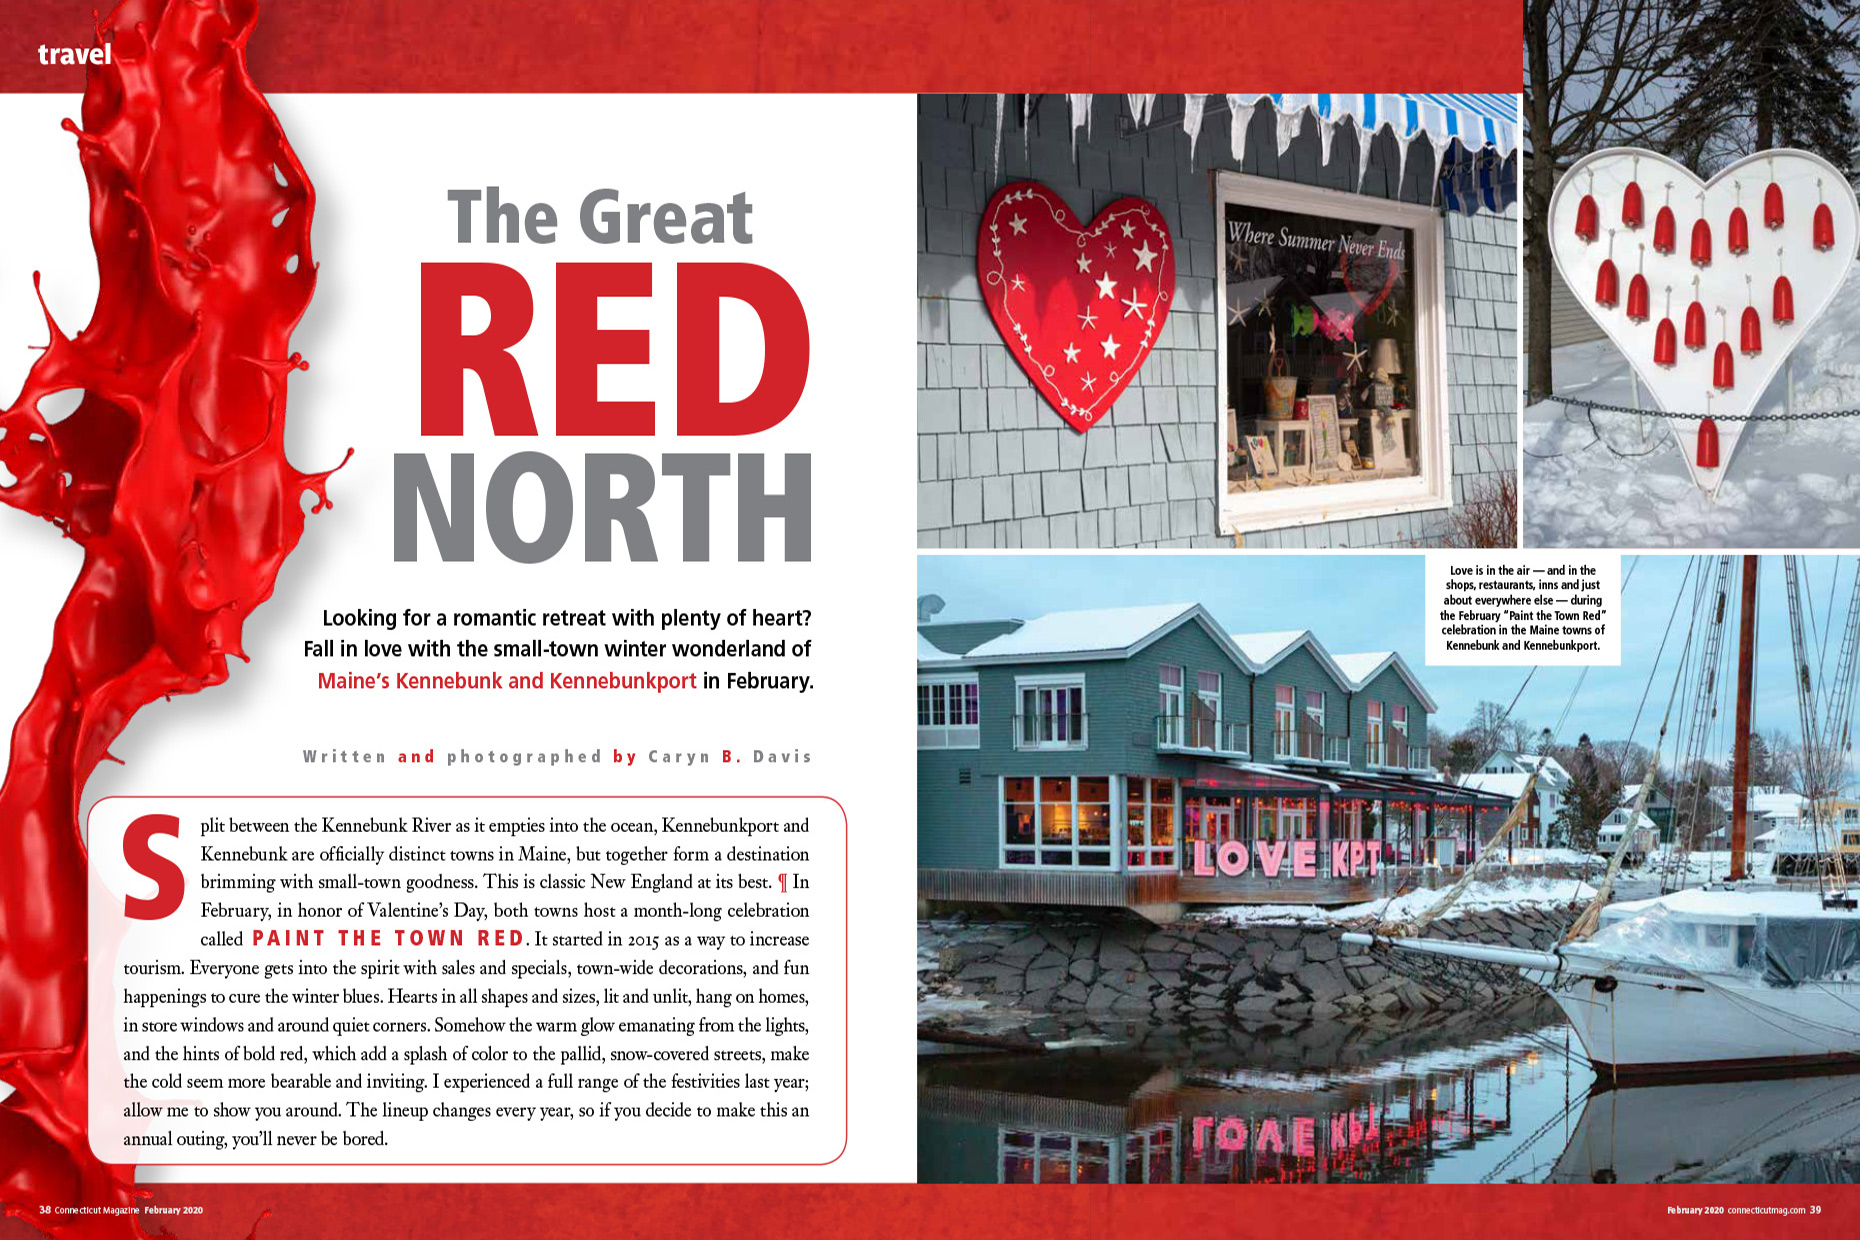 Connecticut-Magazine-Paint-the-Town-Red-Kennenbunkport-Maine-Caryn-B-Davis